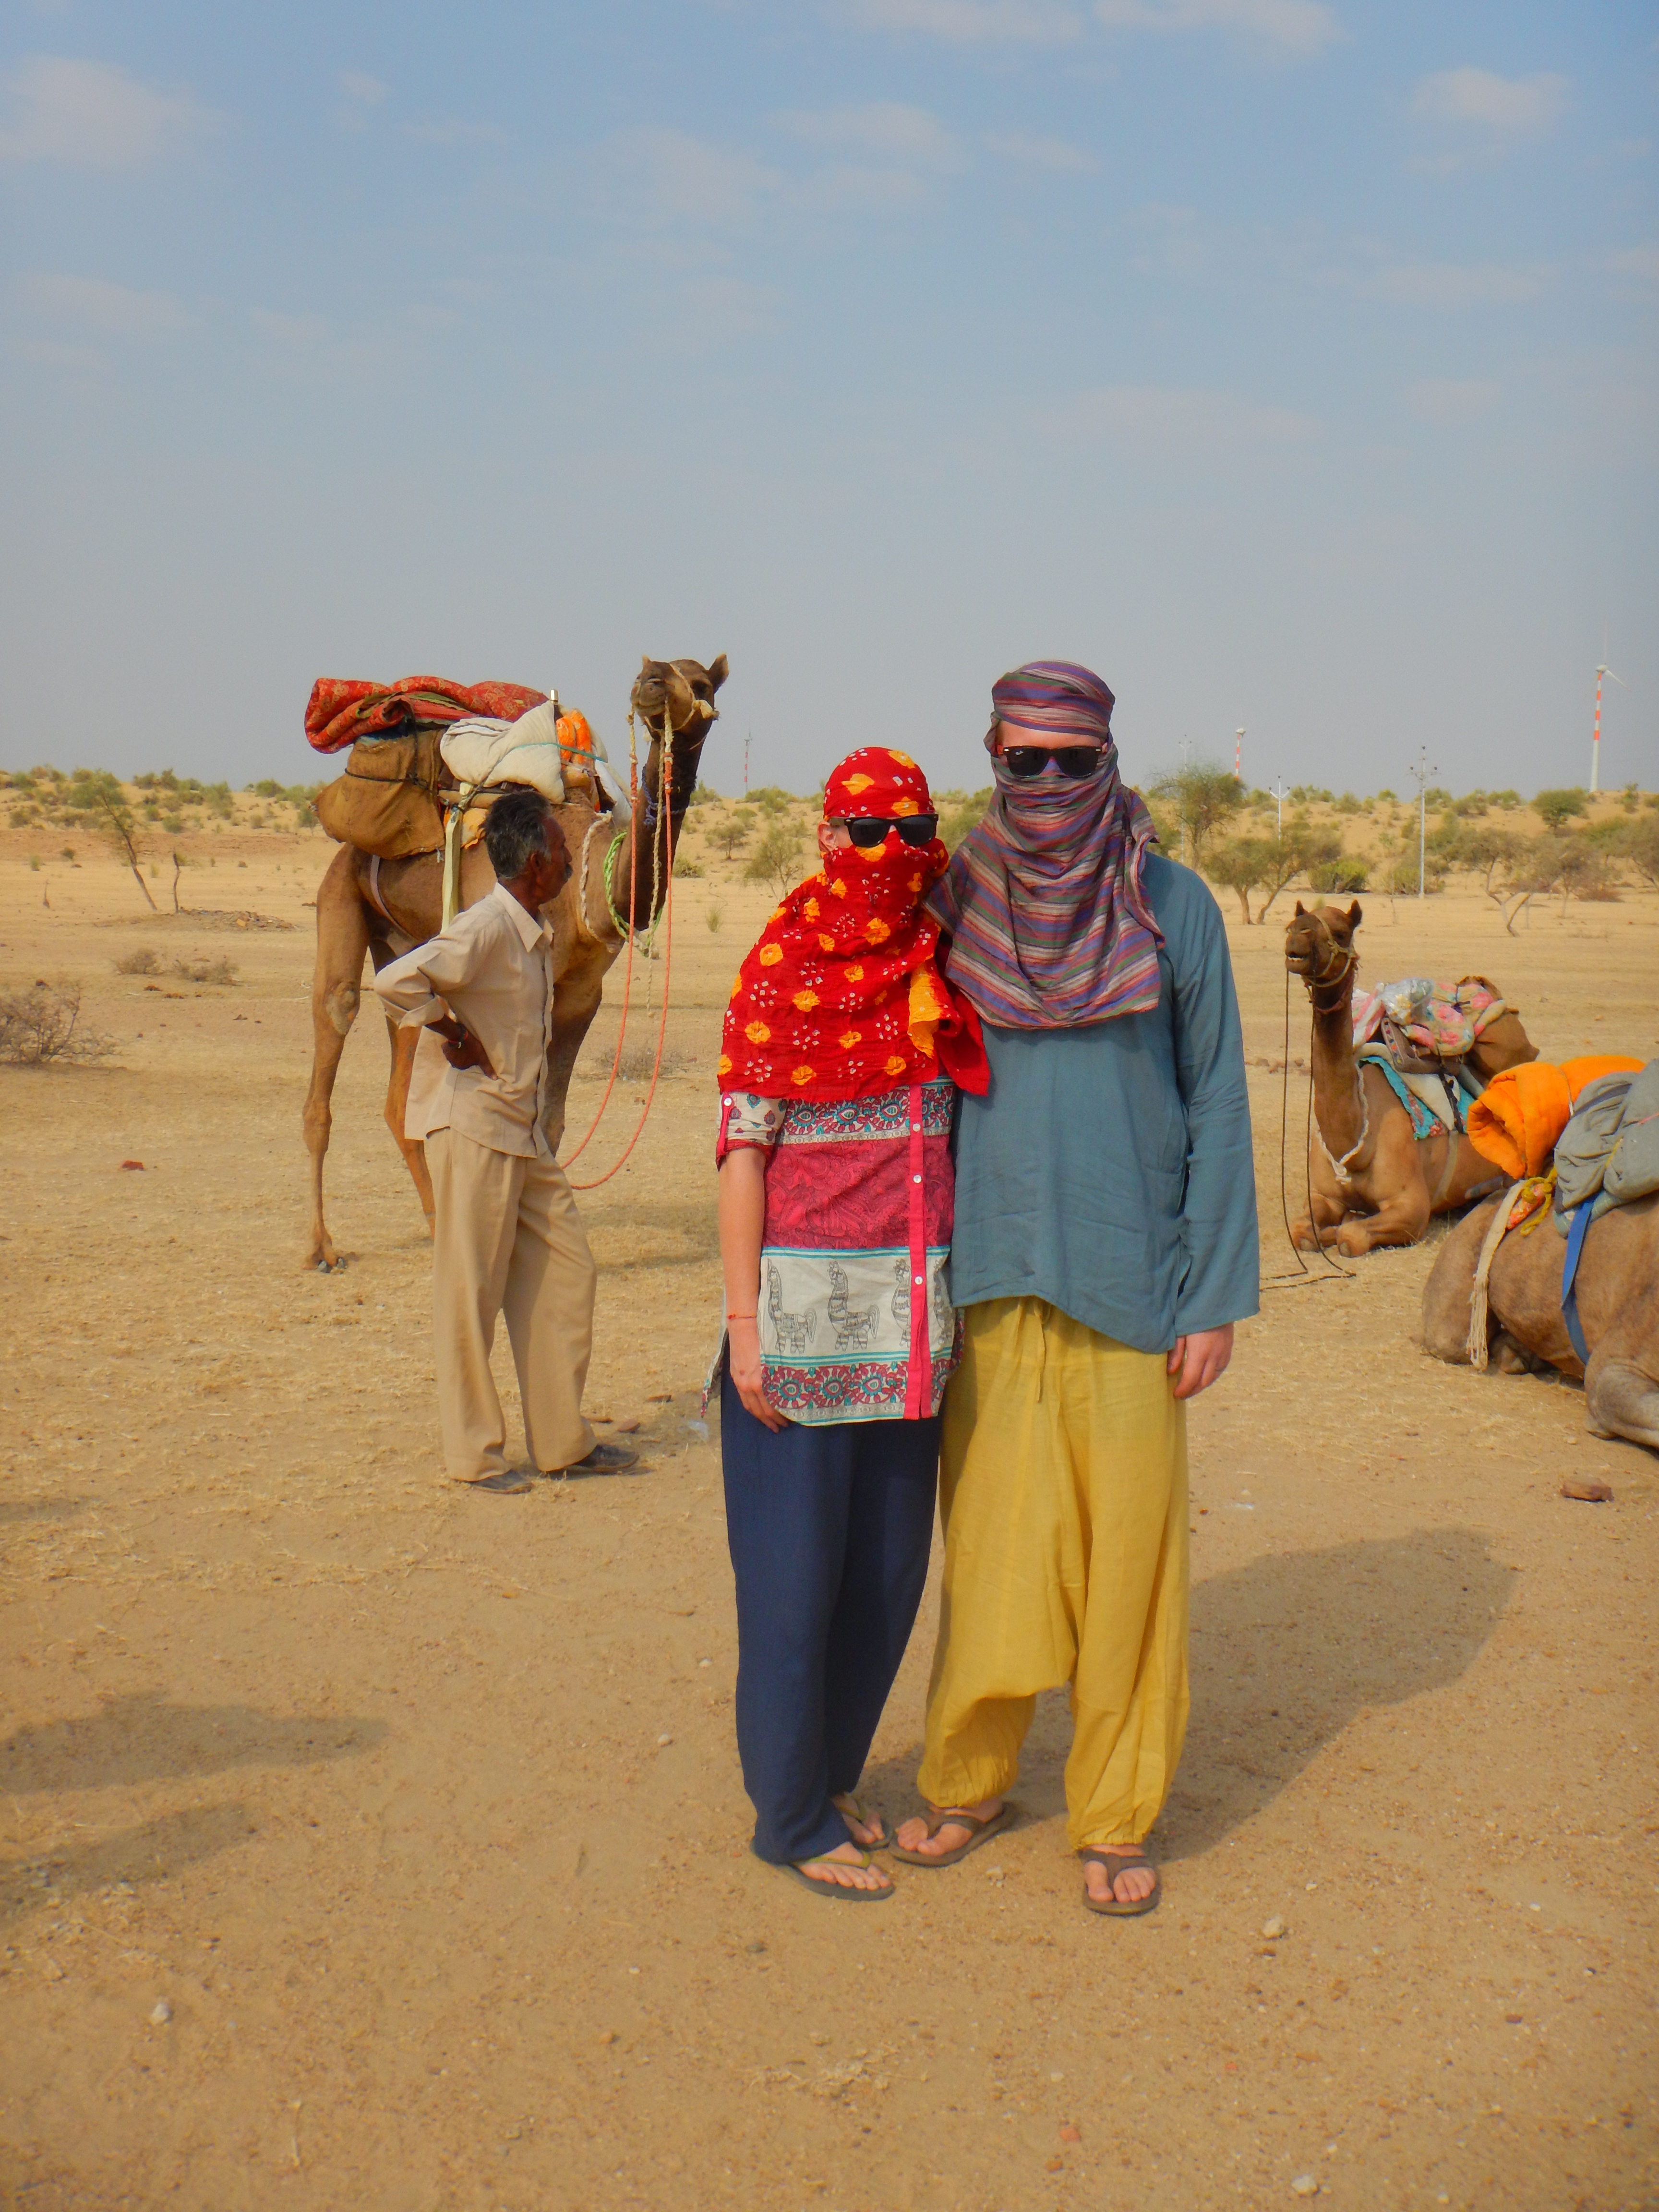 Do you like our camel safari get-ups? It was hot out there!